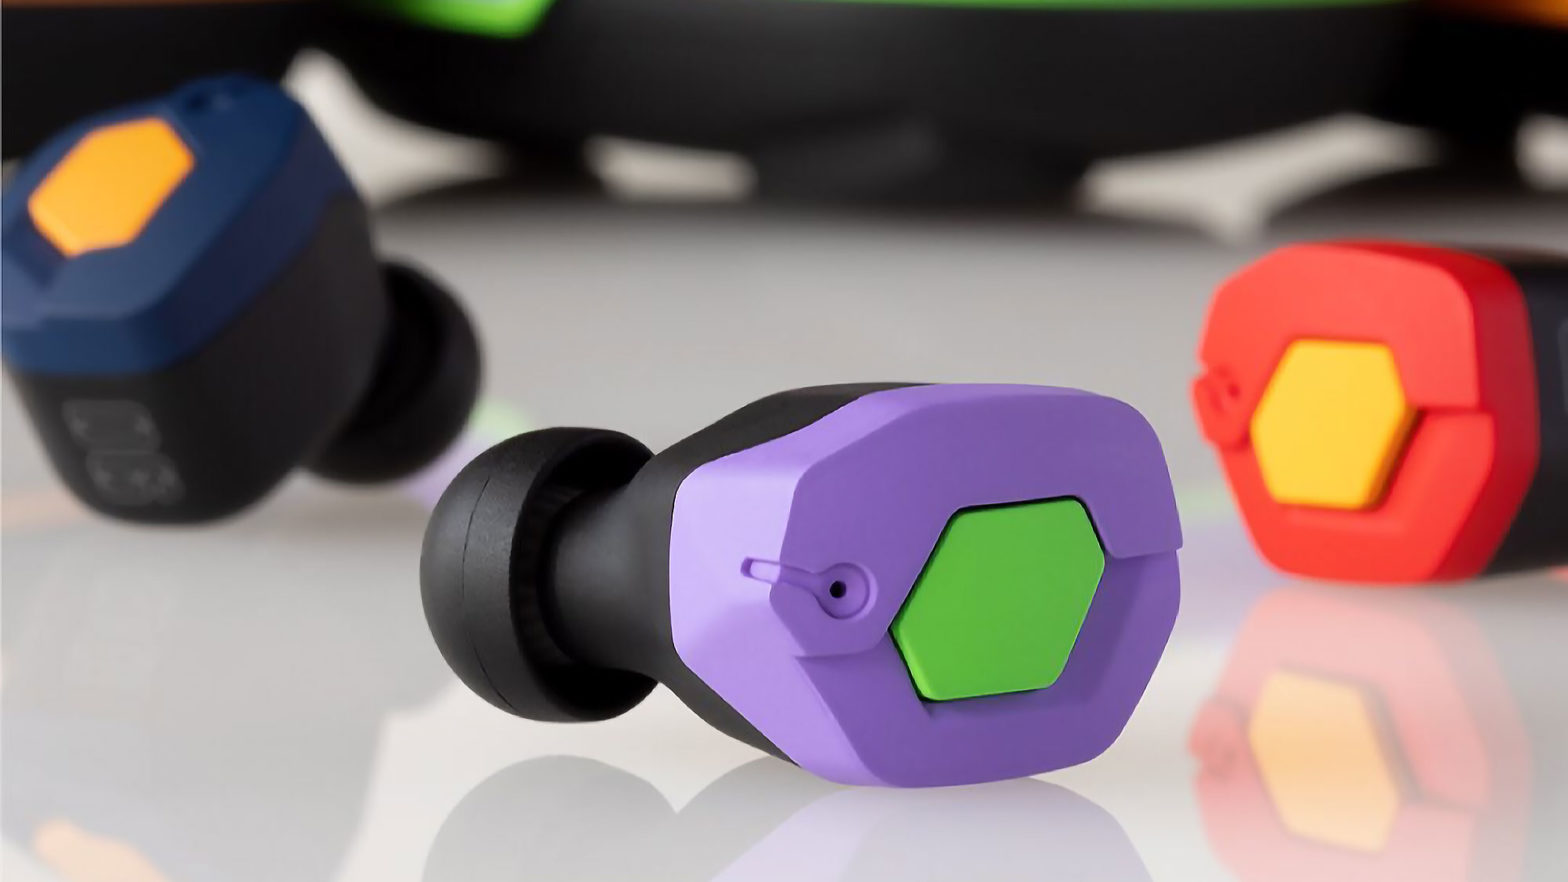 EVA2020 x final True Wireless Earbuds